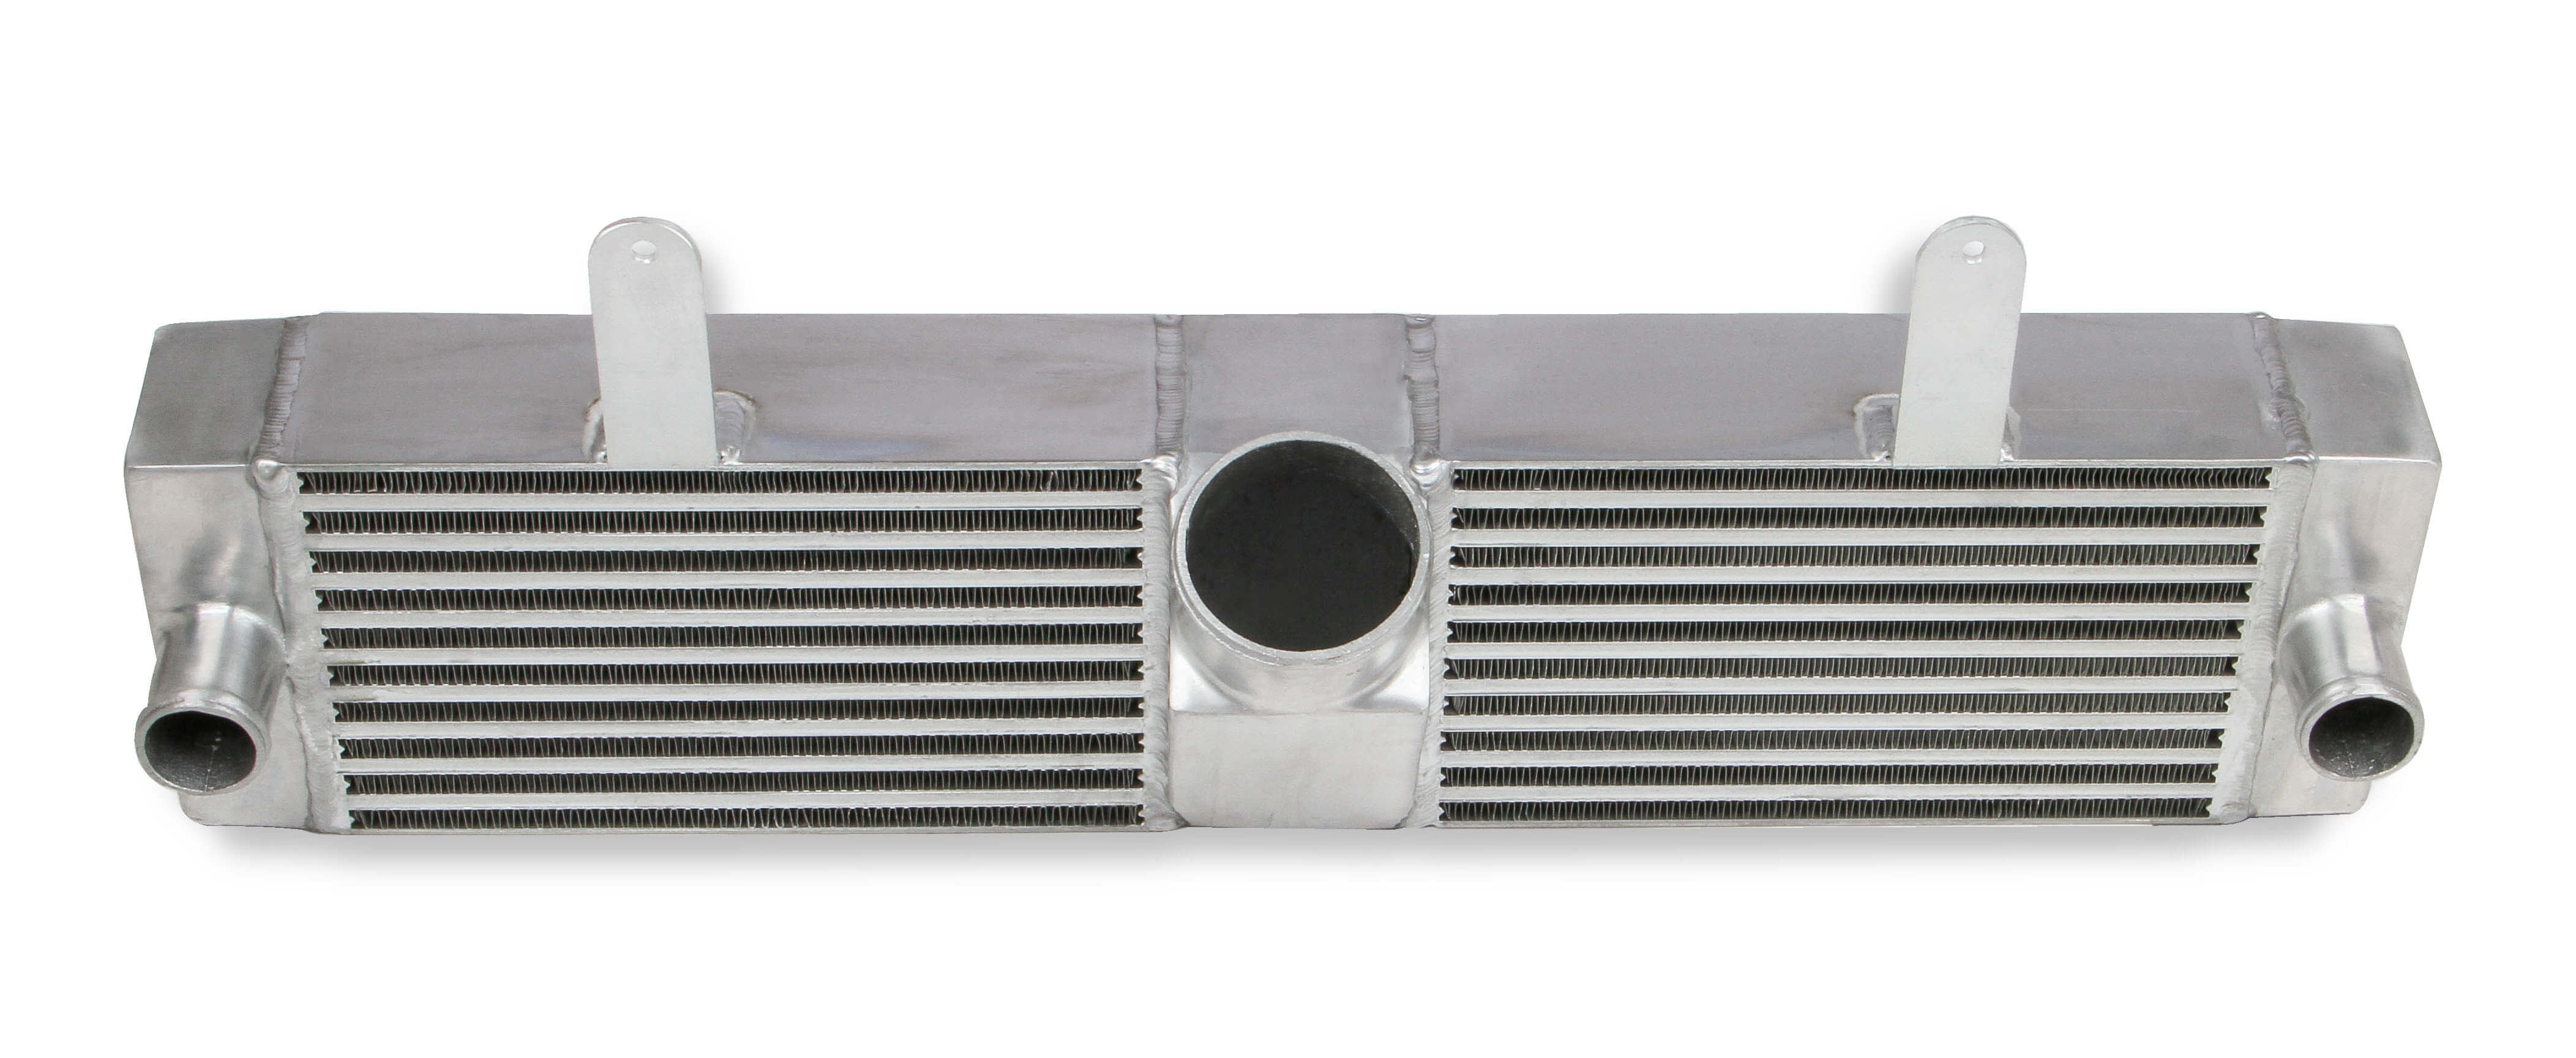 1997-2004 C5 Corvette STS Turbo Direct Fit Intercooler